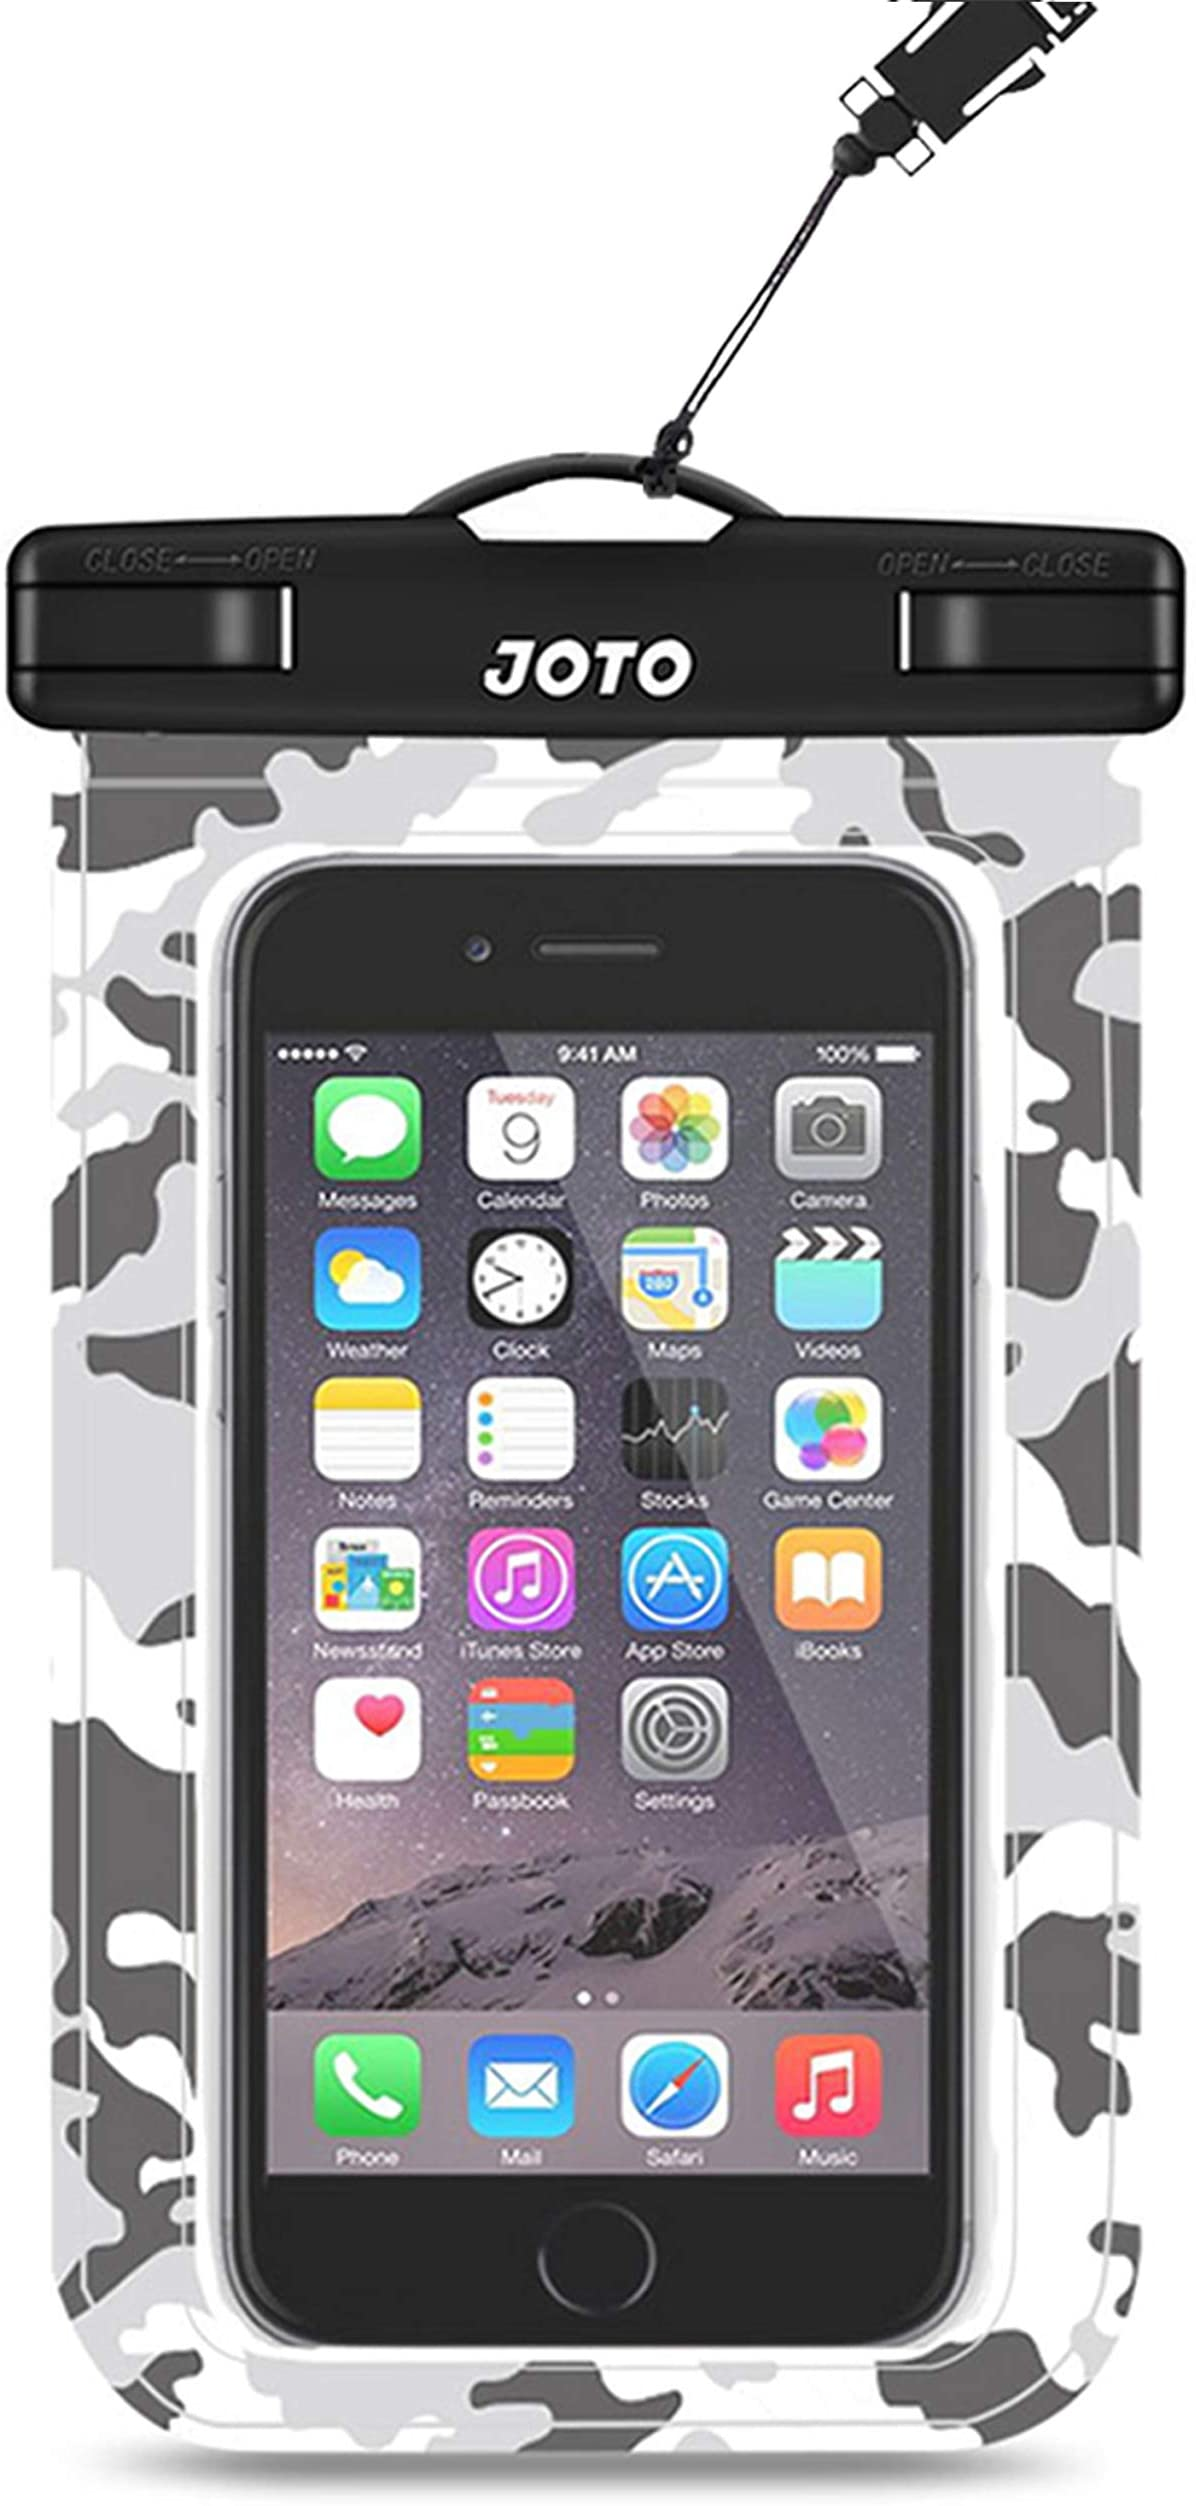 """JOTO Universal Waterproof Pouch Cellphone Dry Bag Case for iPhone 12 Pro Max 11 Pro Max Xs Max XR X 8 7 6S Plus SE, Galaxy S20 Ultra S20+ S10 Plus S10e /Note 10+ 9, Pixel 4 XL up to 6.9"""" -Grey Camo"""